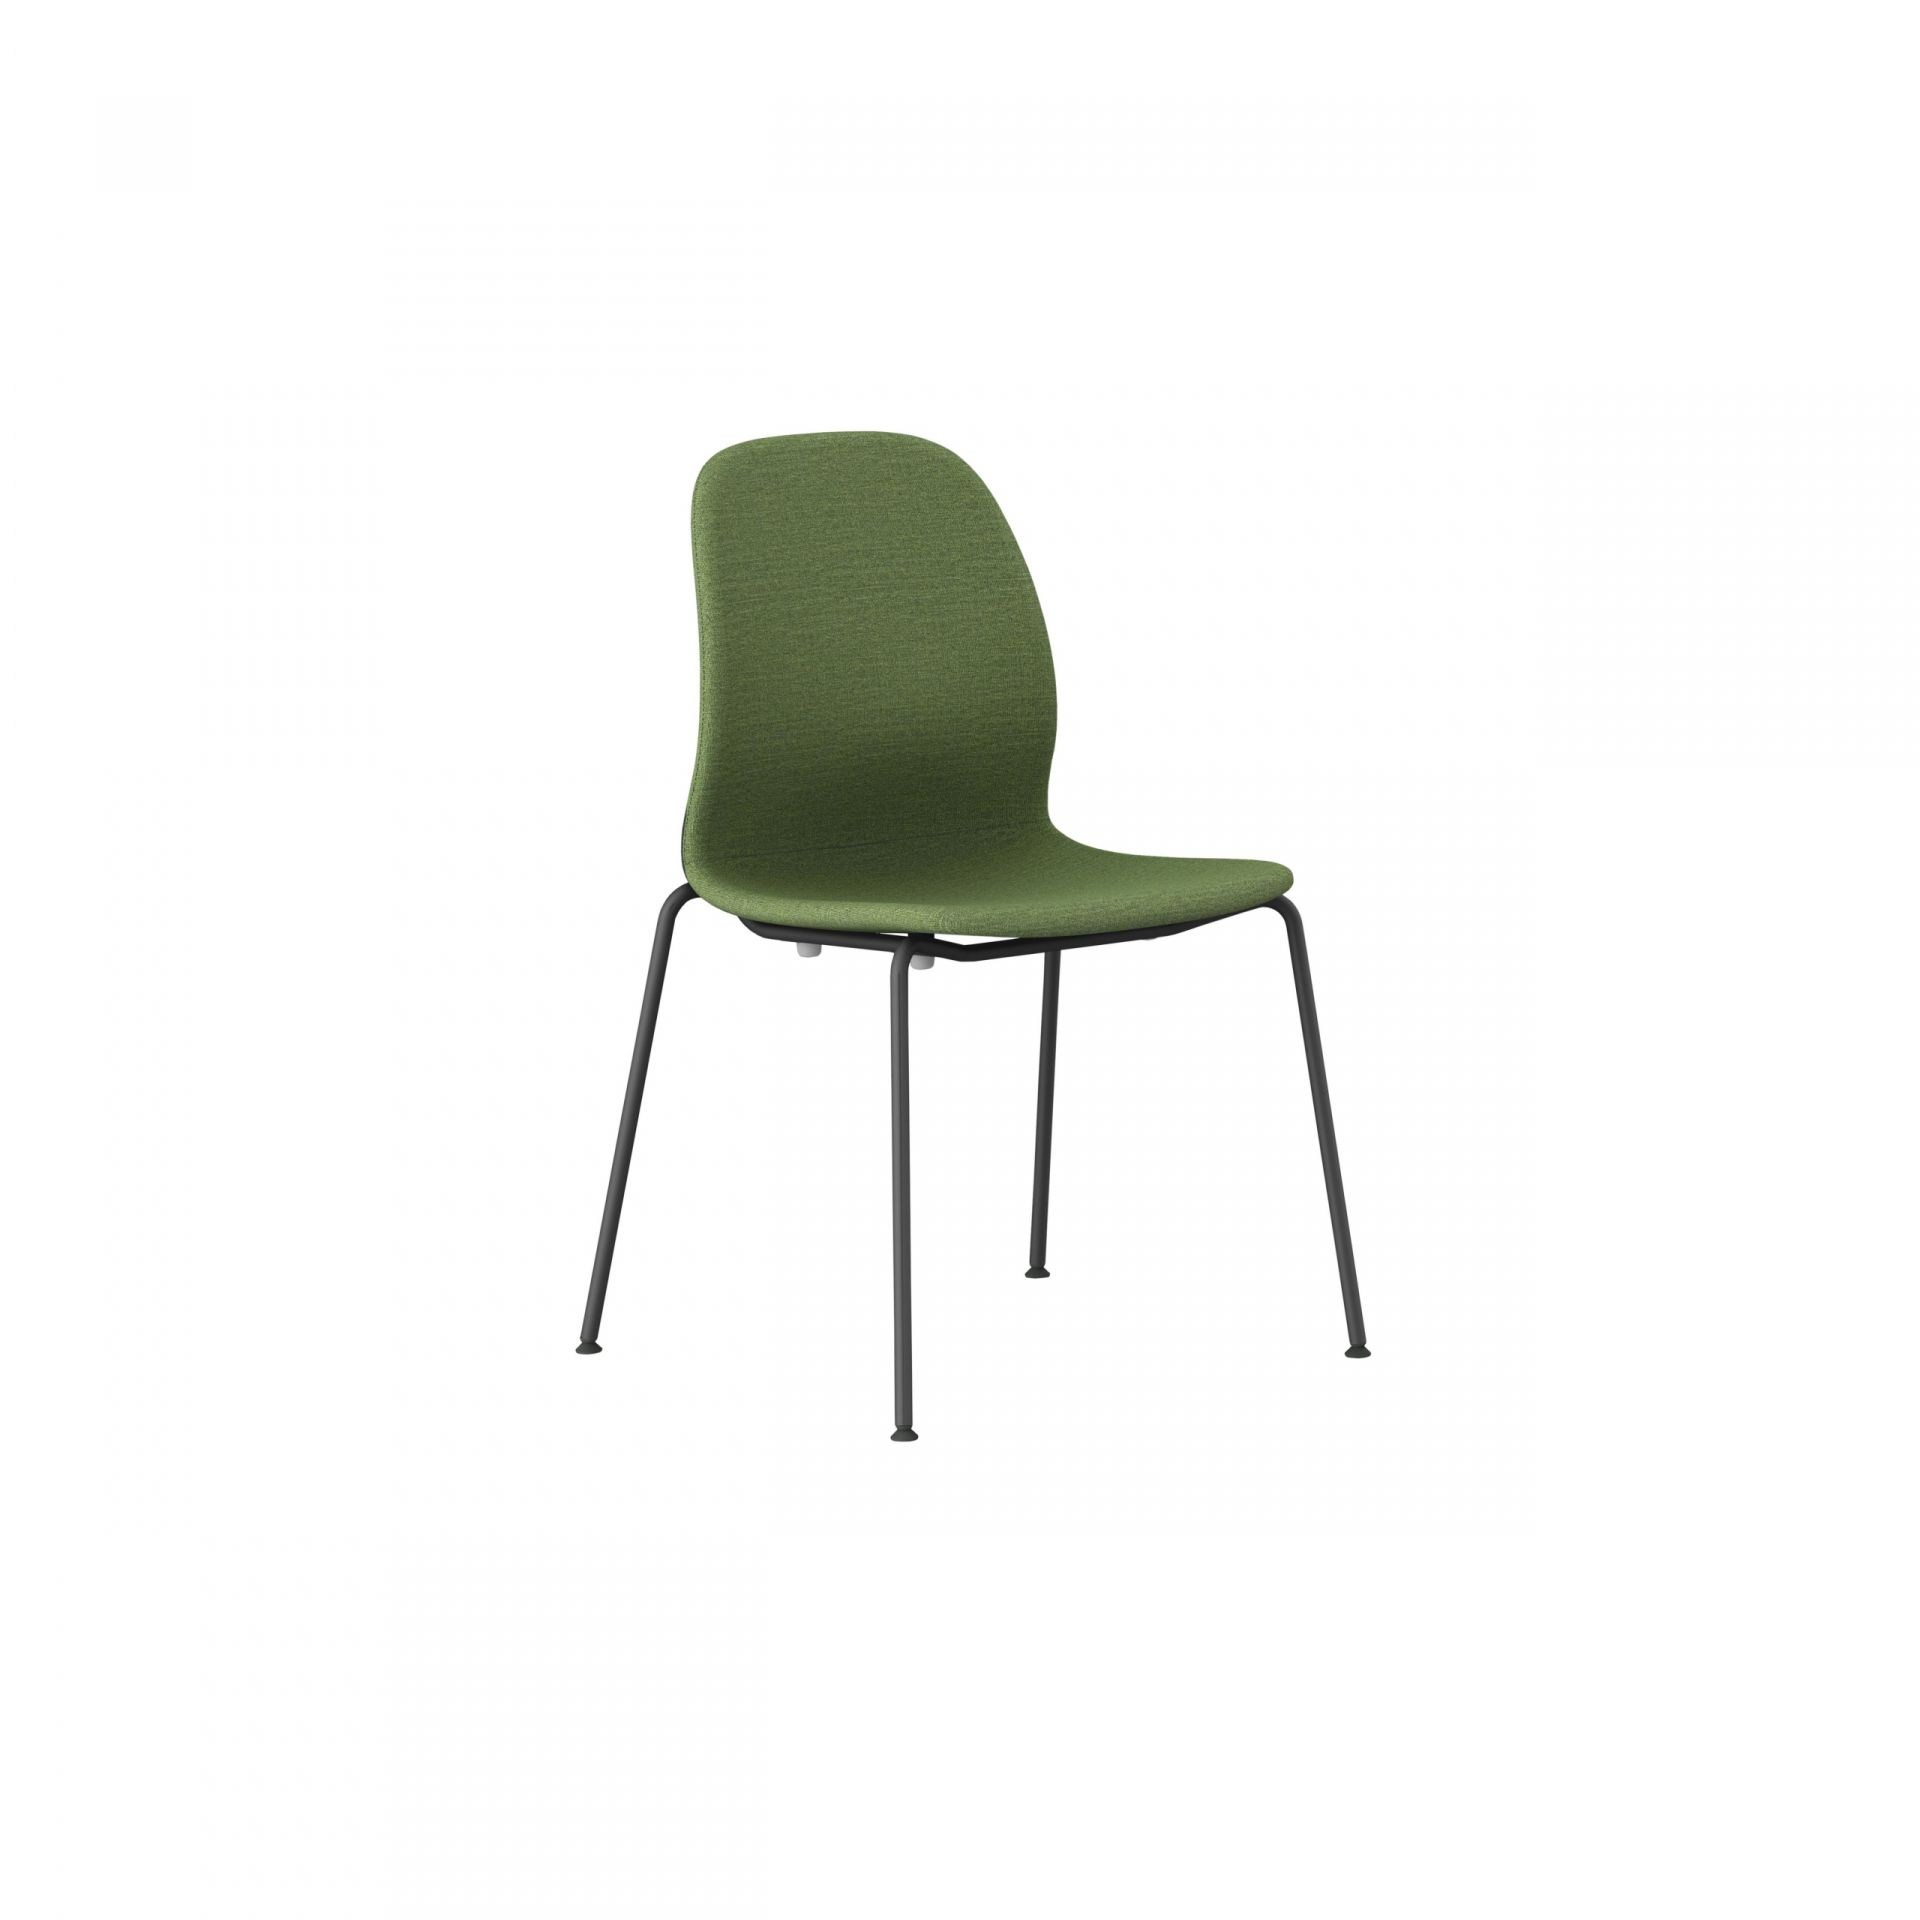 Archie Chair with metal legs product image 3